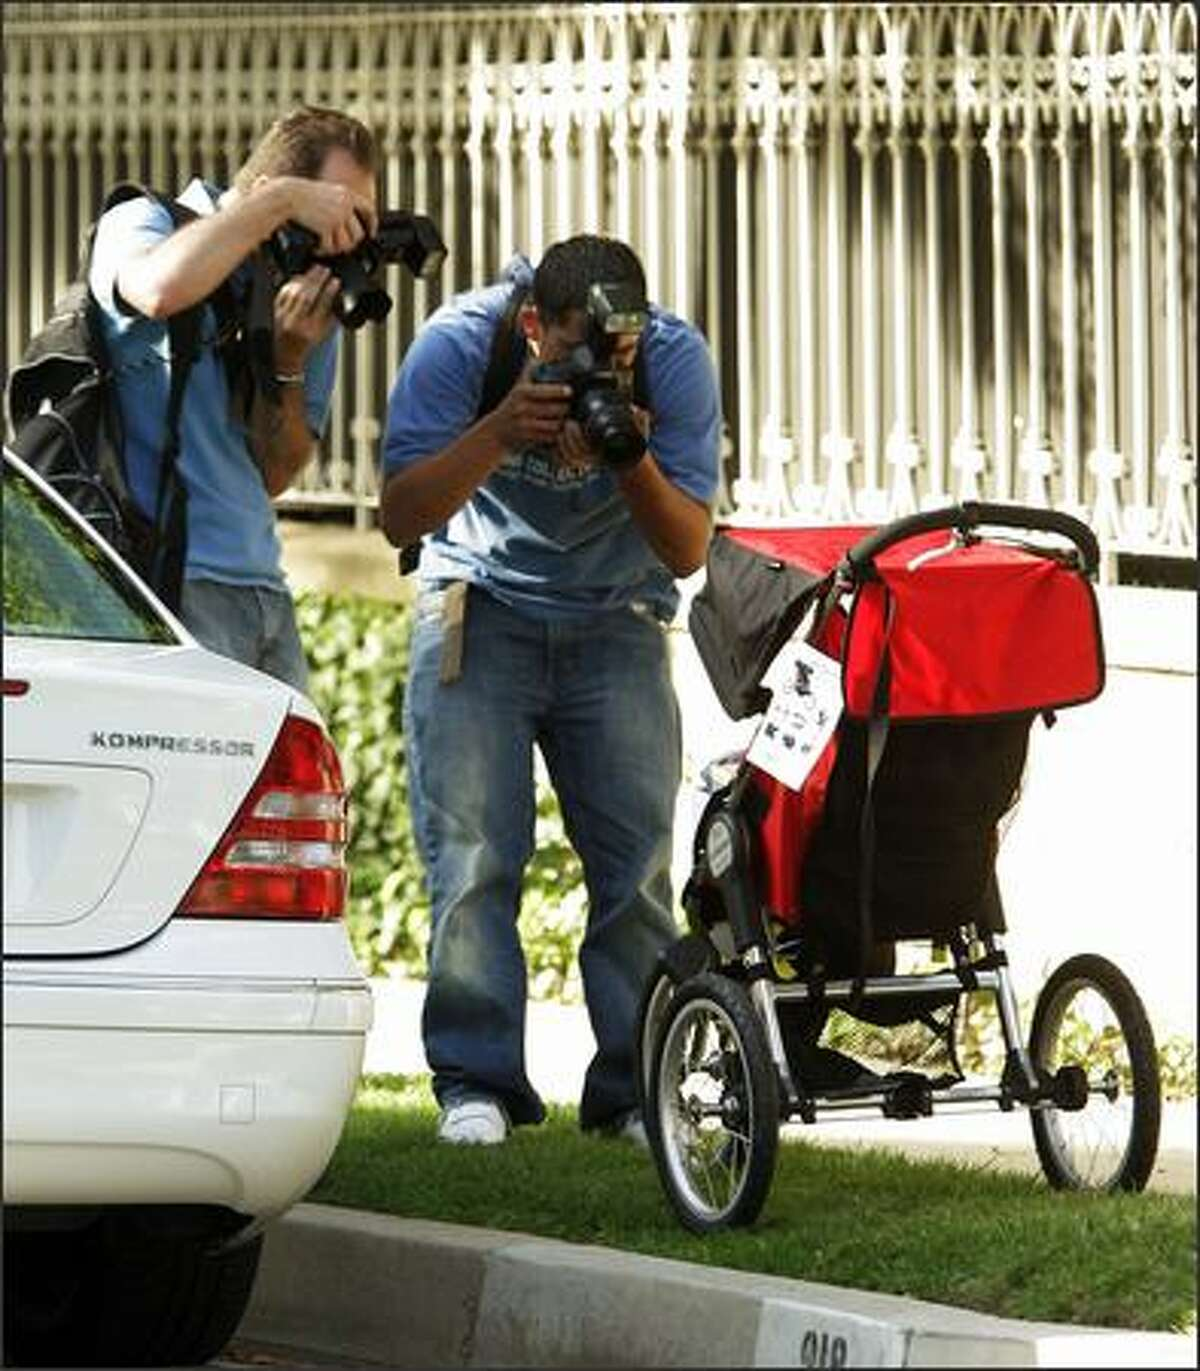 We know paparazzi live on a certain measure of desperation -- a glimpse, a sneak peek, an expression can fuel paychecks -- but an empty baby stroller? If it belongs to TomKat, they will shoot it. This Baby Jogger was beset by snapping shutters almost as soon as it was set in front of Cruise's house for delivery.